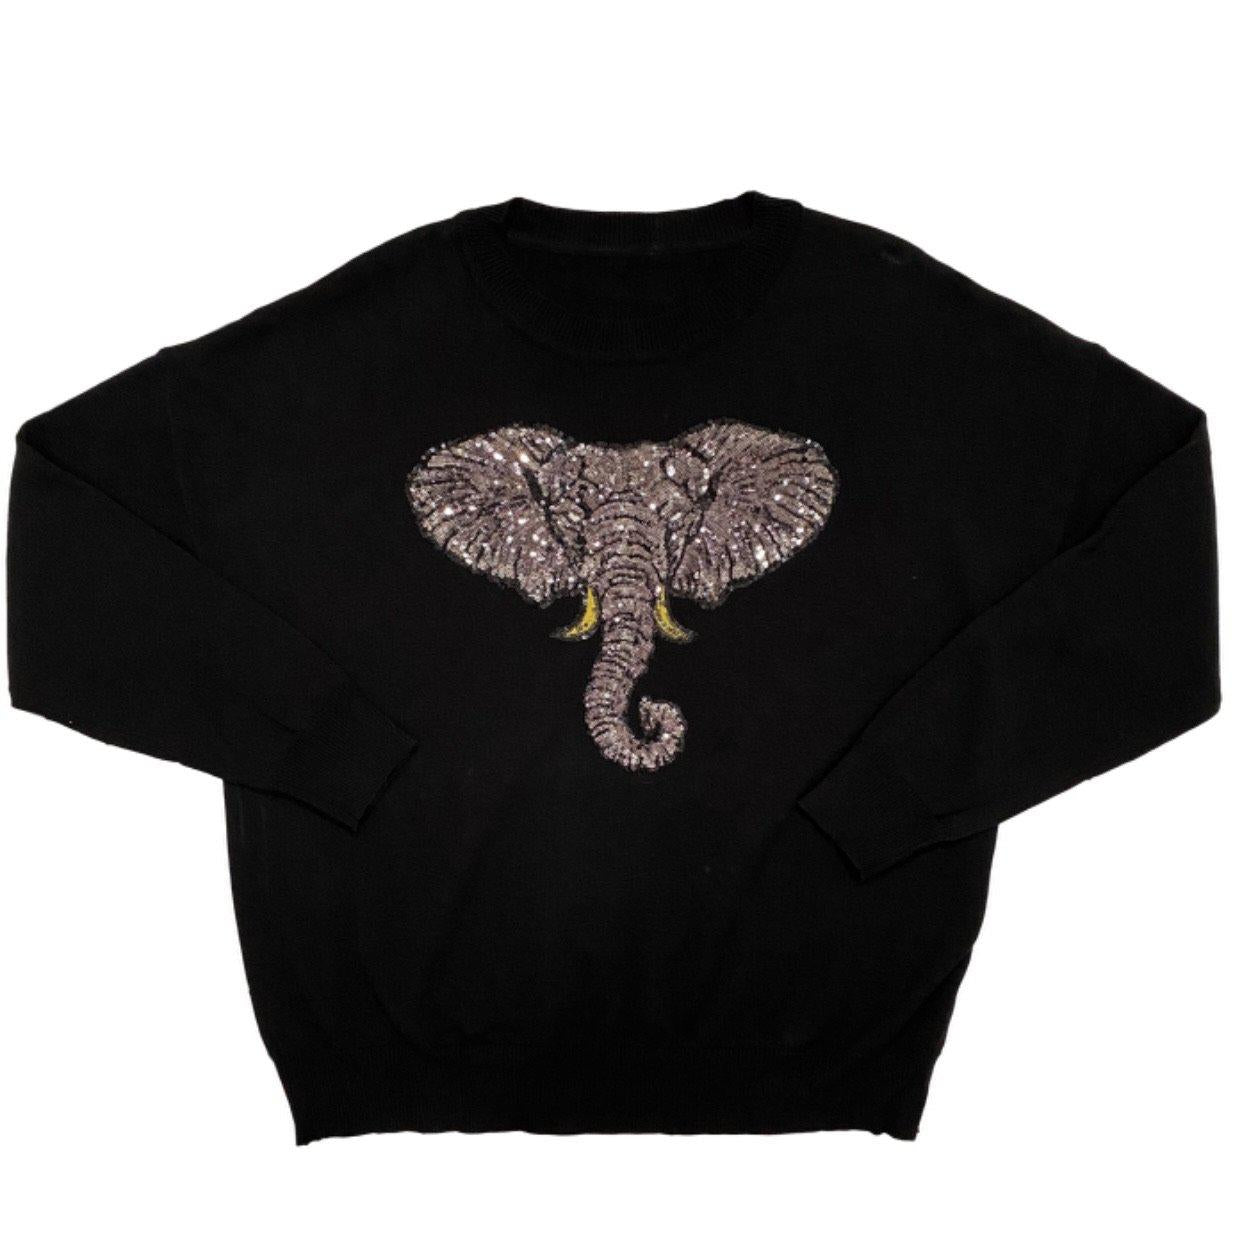 Black Oversized Elephant Sweater